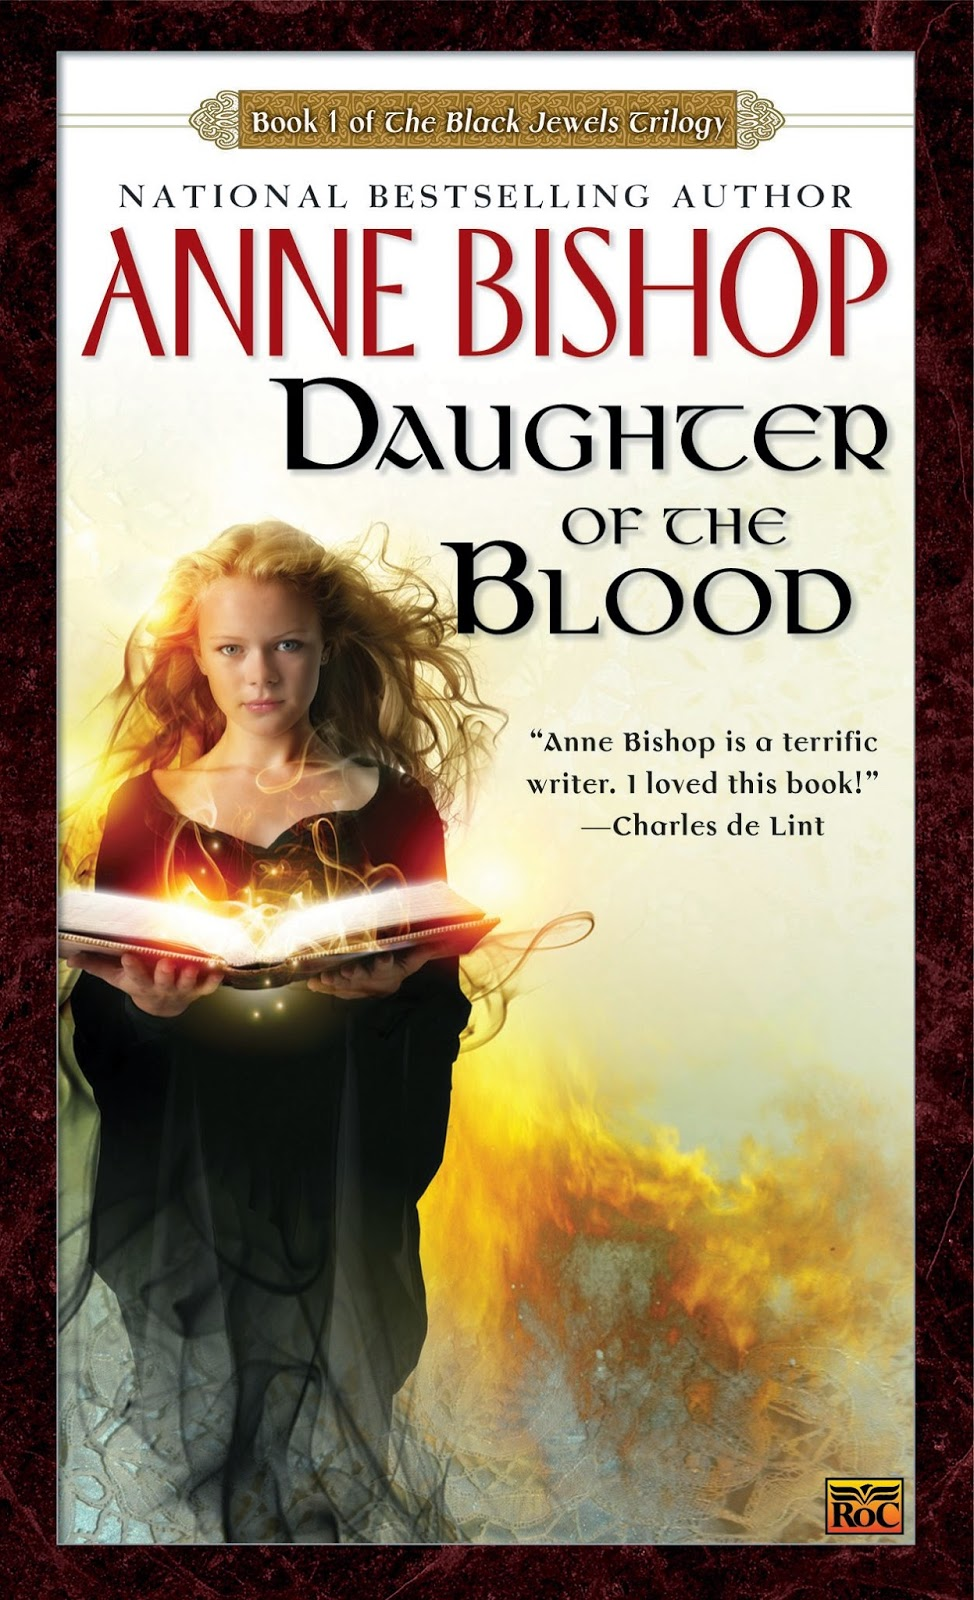 https://www.goodreads.com/book/show/47956.Daughter_of_the_Blood?from_search=true&search_exp_group=group_a&search_version=service